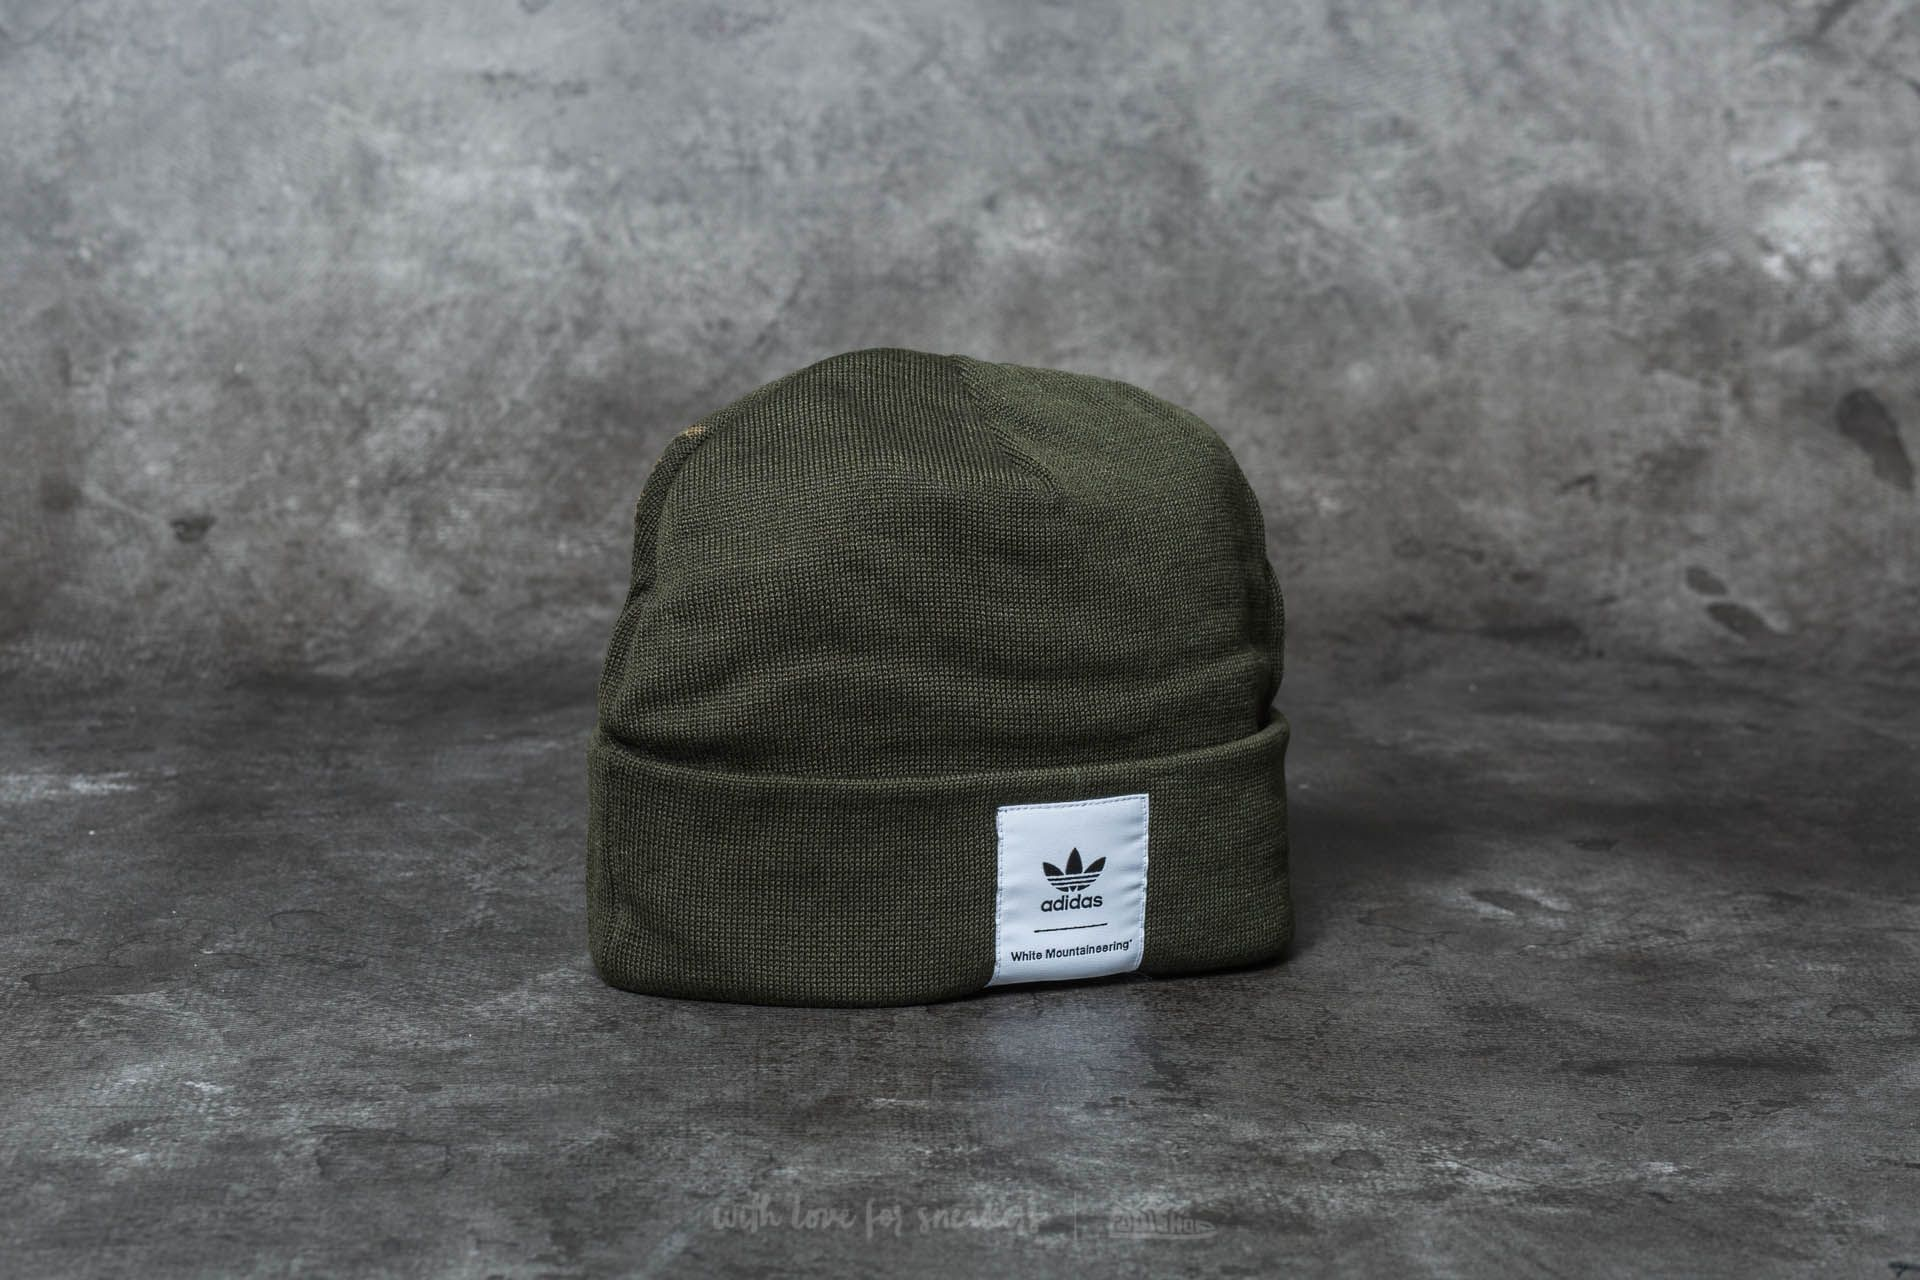 7afaf9afe43f1 adidas White Mountaineering Beanie Night Cargo | Footshop